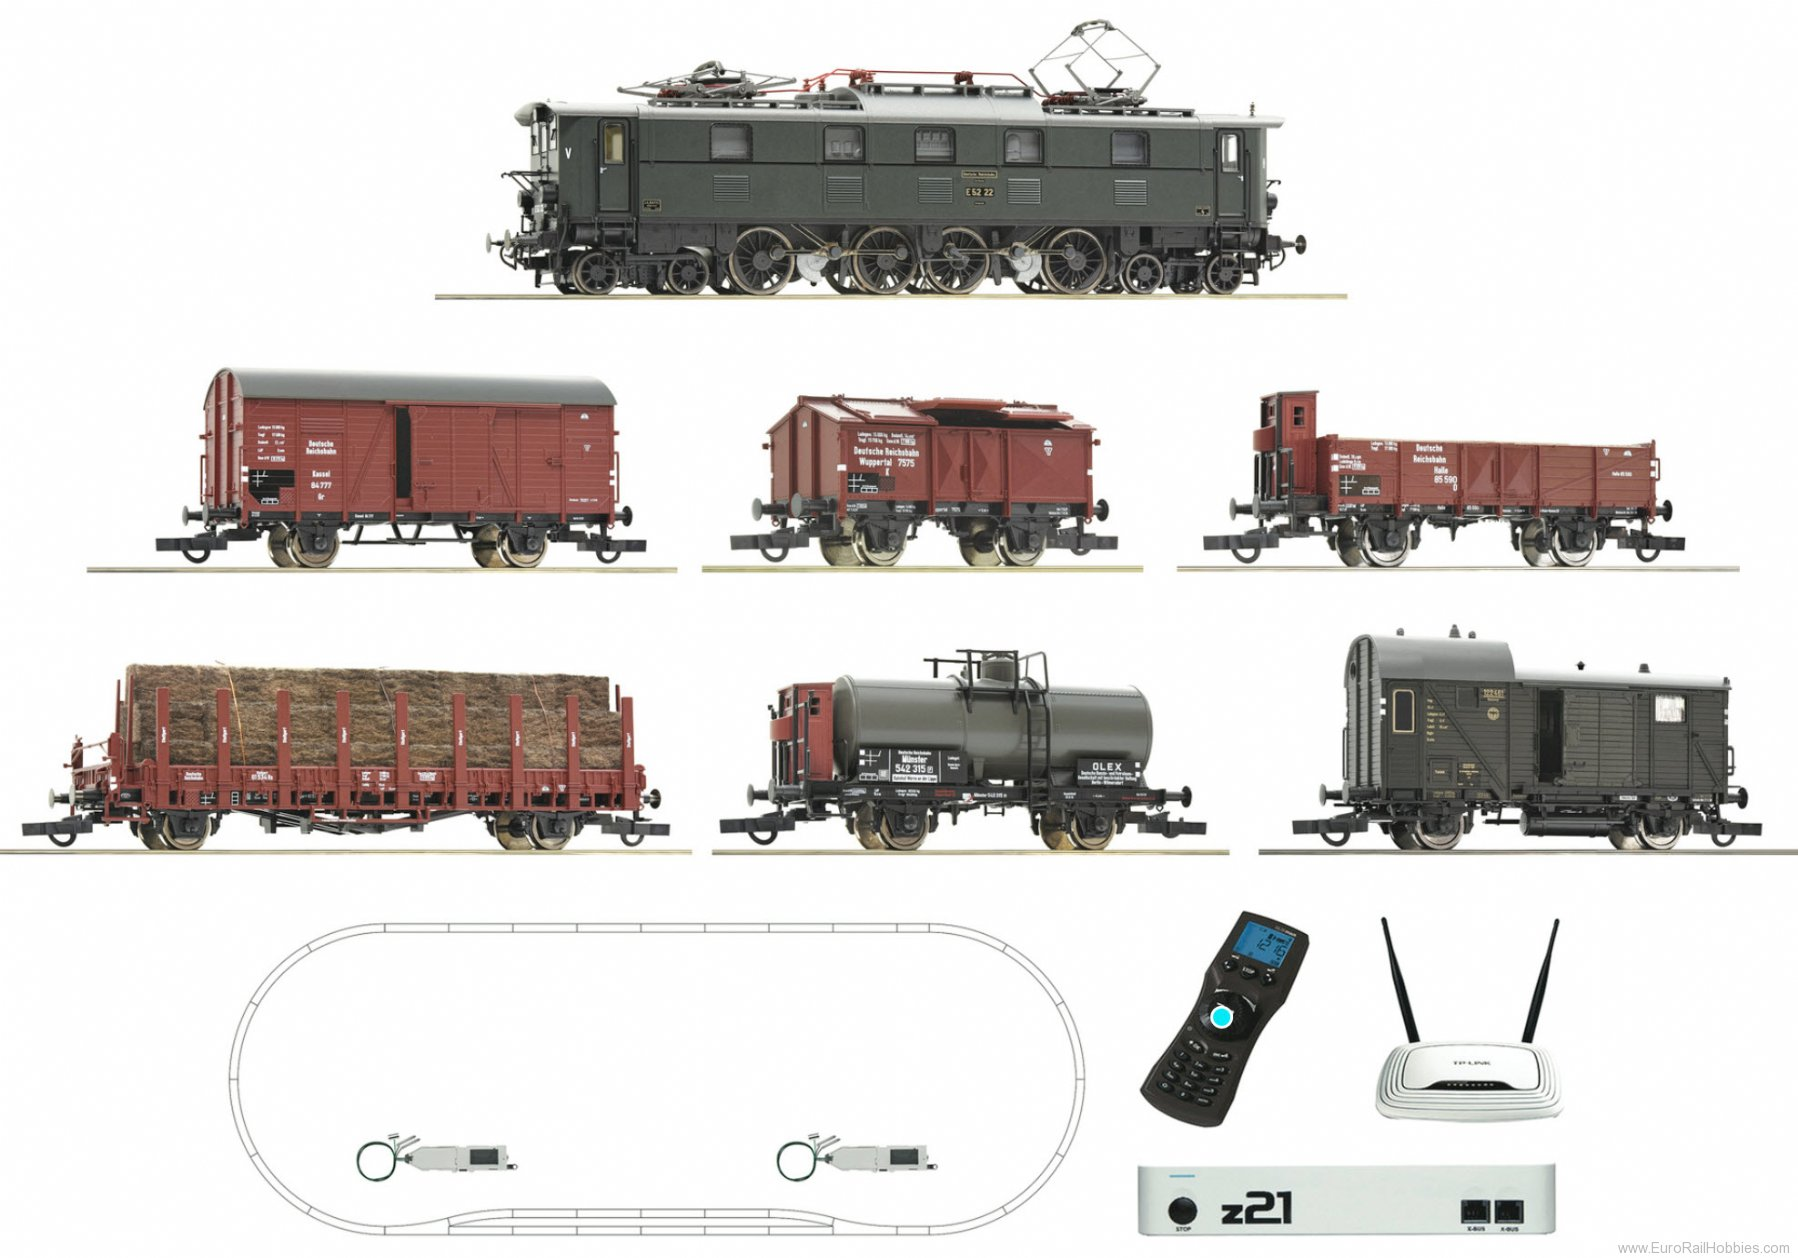 Roco 51323 DRG E52 Premium Digital Starter Set - Now available as a Train Set only